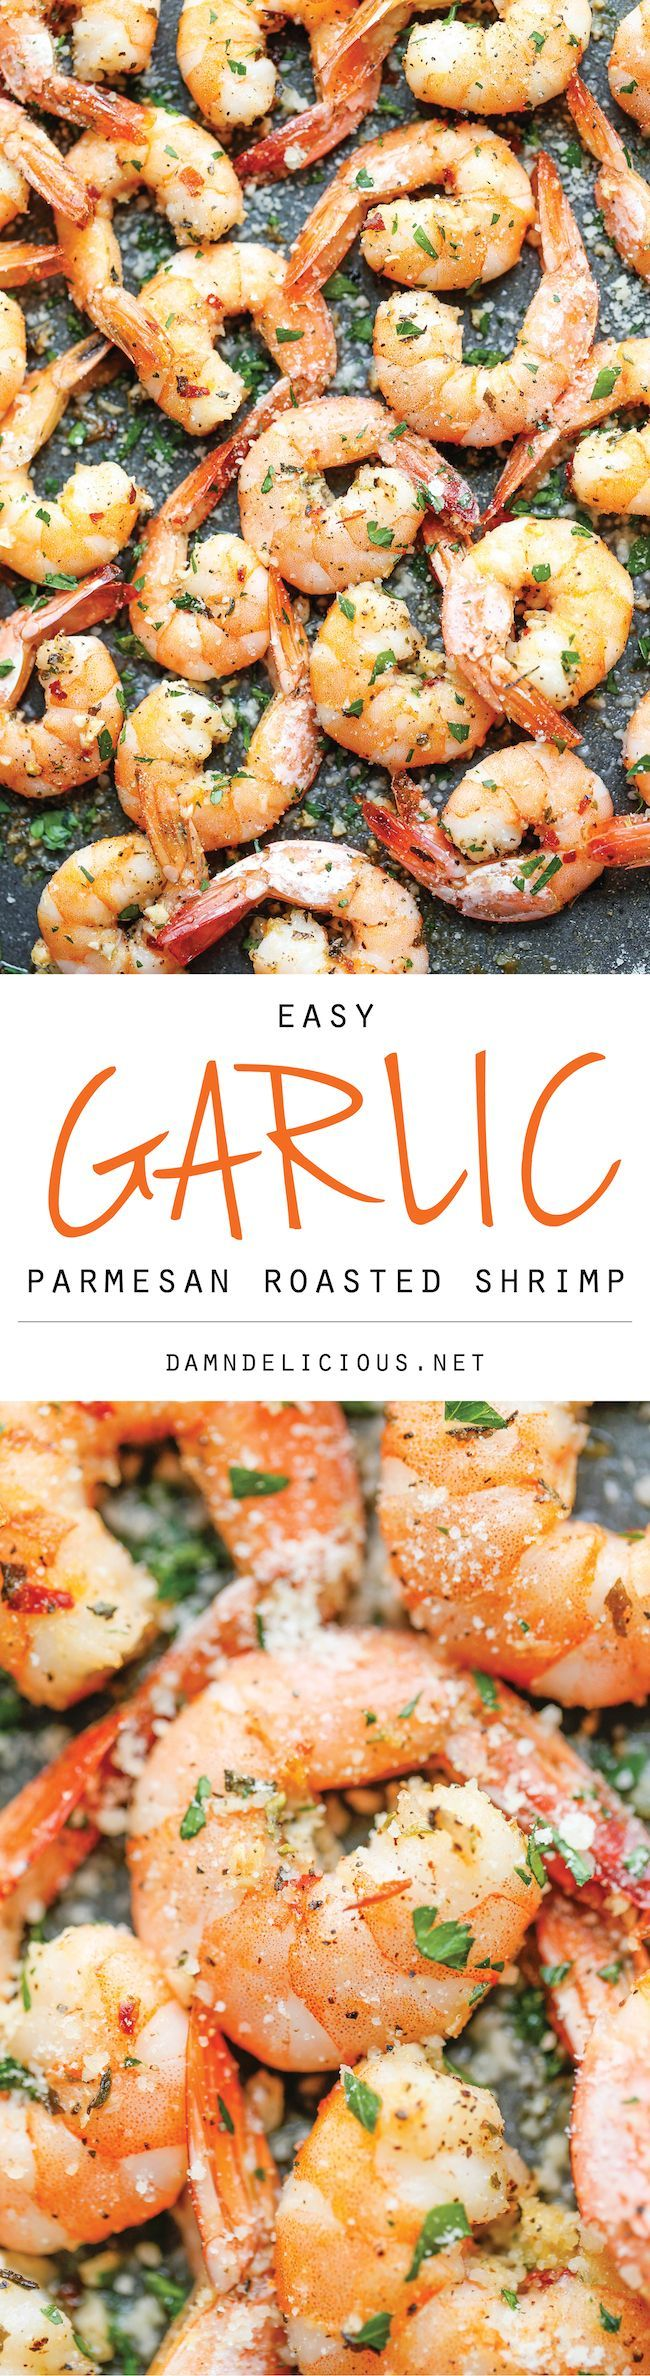 Garlic Parmesan Roasted Shrimp -  Easy and just 5 minutes prep #shrimp #garlic #recipe